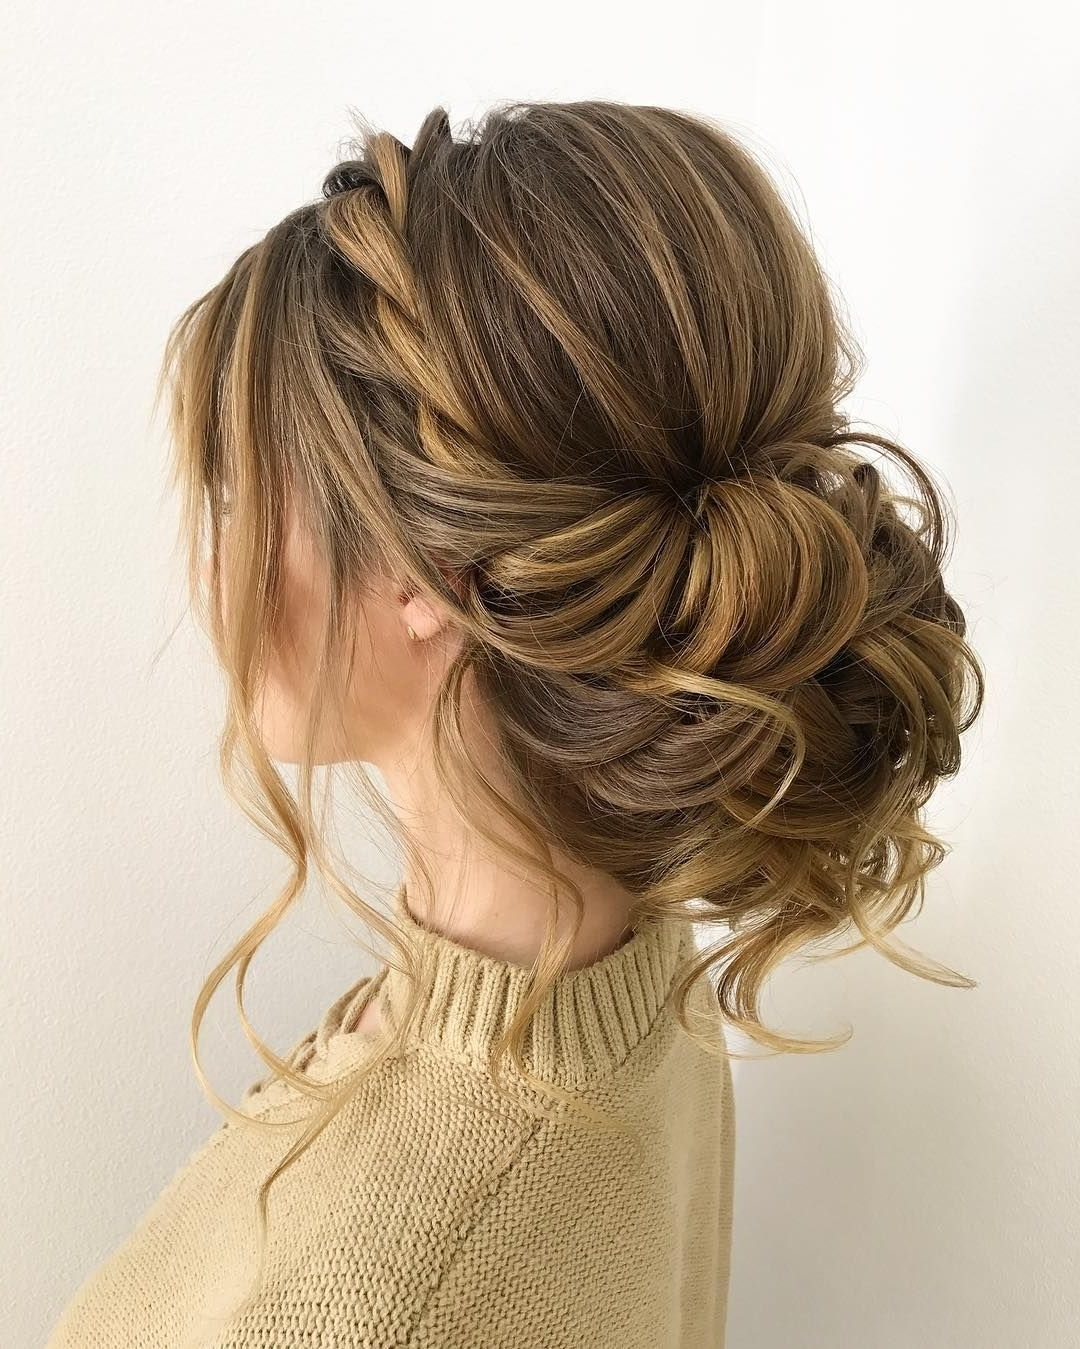 Gorgeous Wedding Updo Hairstyles That Will Wow Your Big Day Throughout Updos For Long Hair (View 9 of 15)